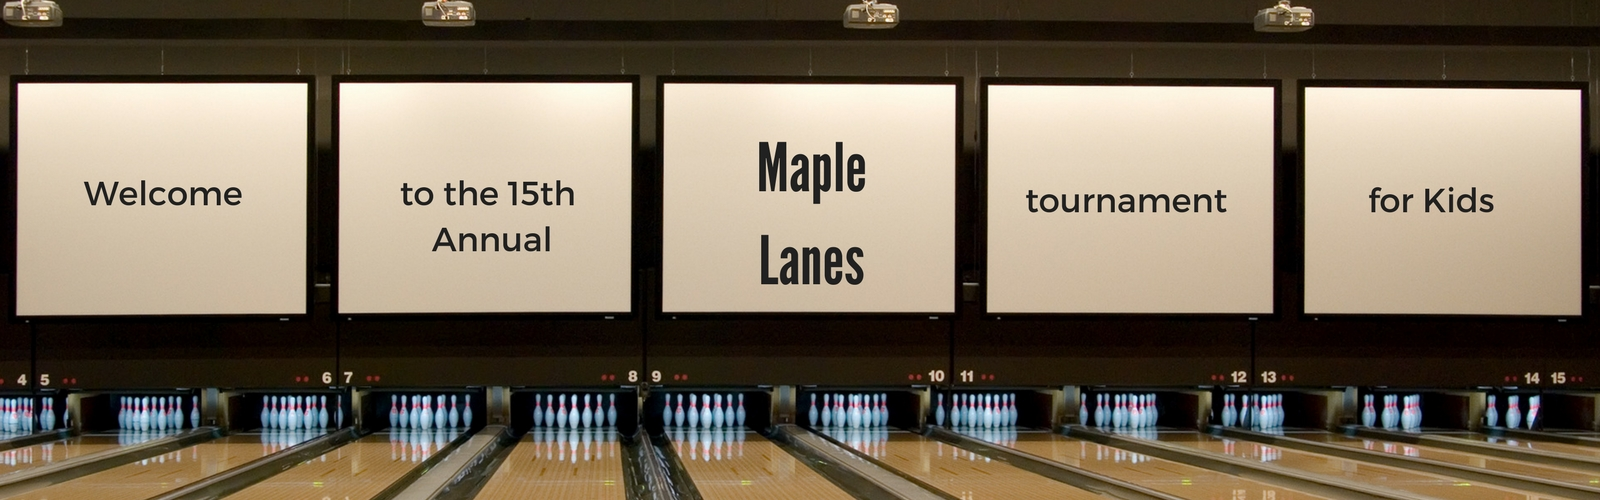 tournament maple lanes